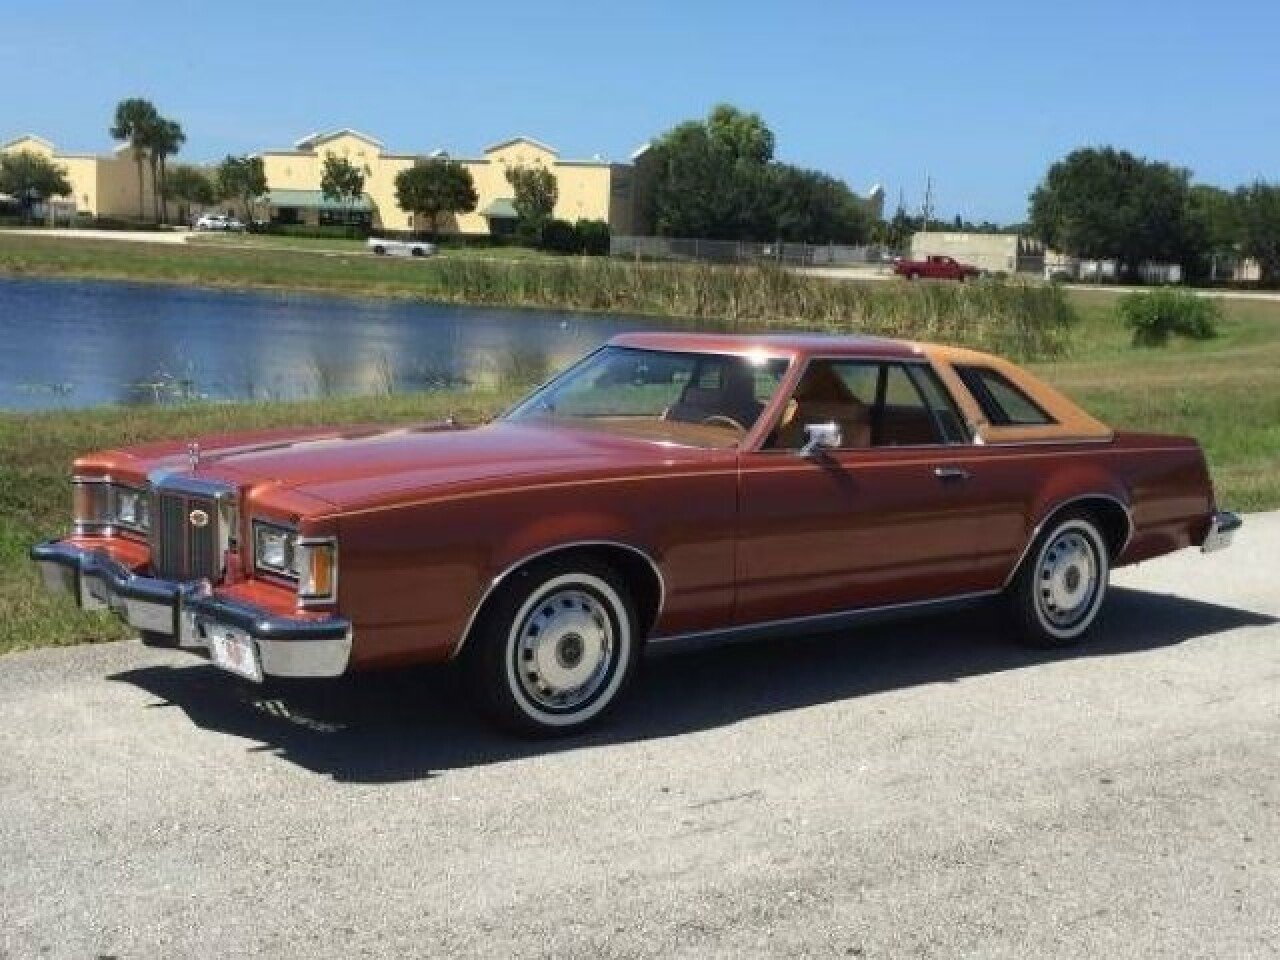 American Muscle Cars For Sale >> 1979 Mercury Cougar for sale near Cadillac, Michigan 49601 - Classics on Autotrader